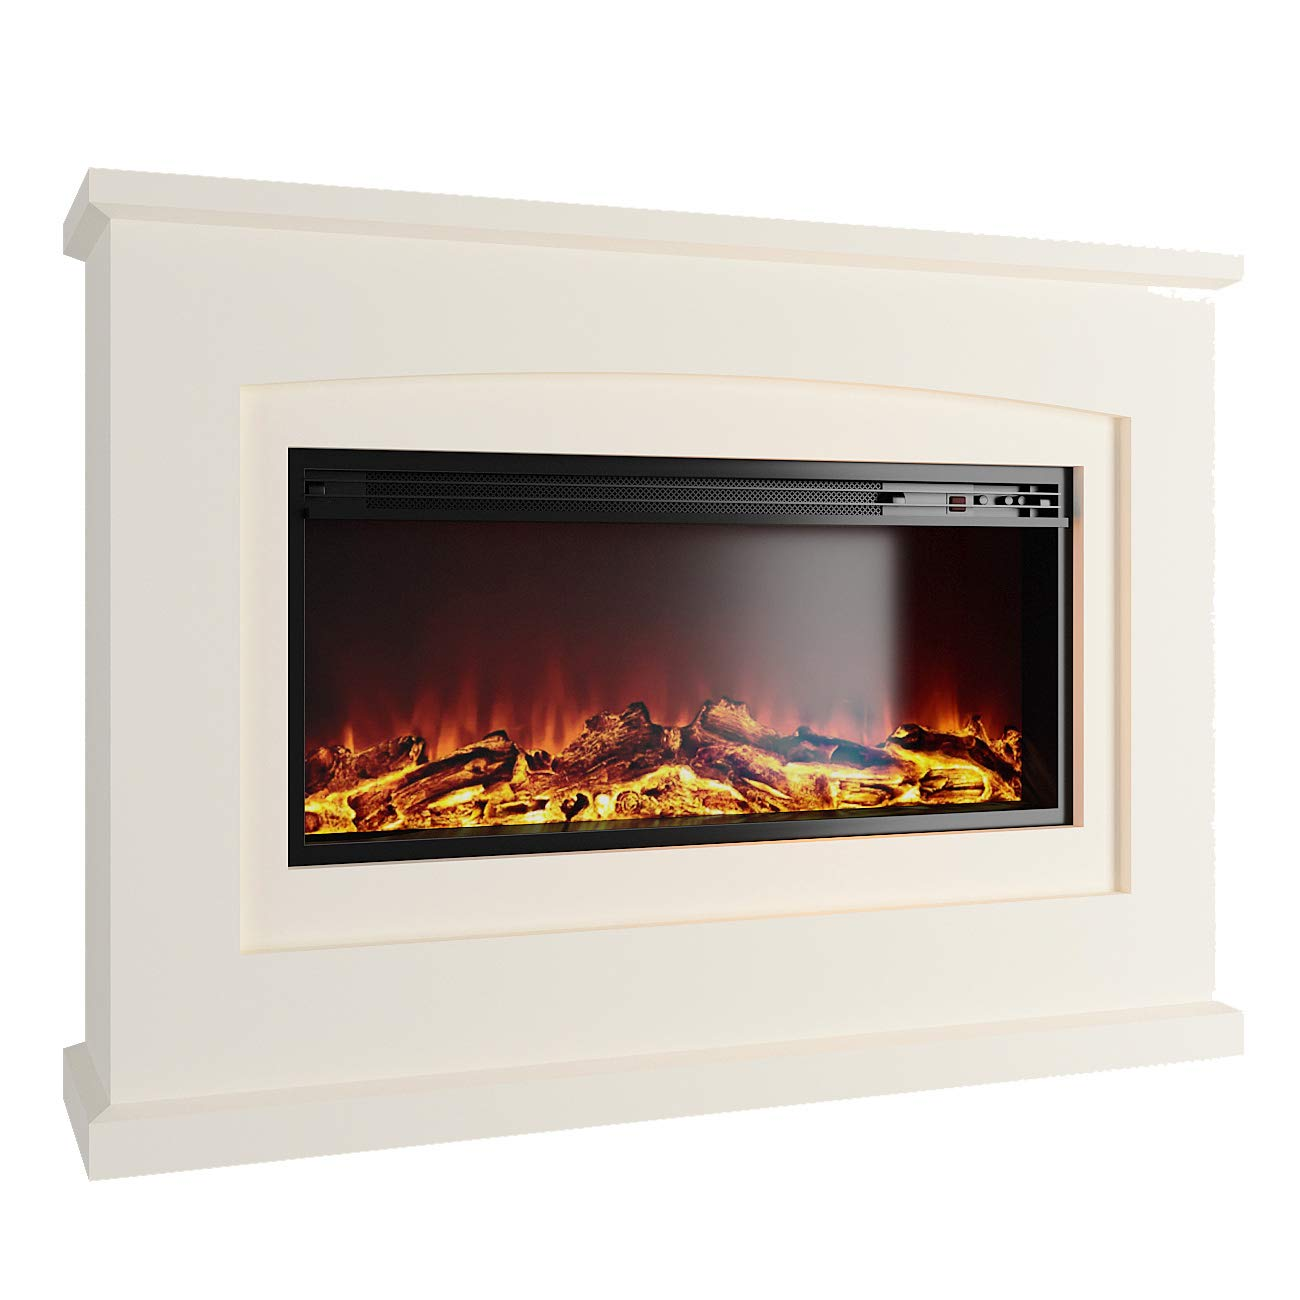 MODERN LIFE Electric Fireplace Suite 1800 Watt with LED Burning Flame Effect Adjustable Thermostat Countdown Time 2 Heat Settings Remote Control